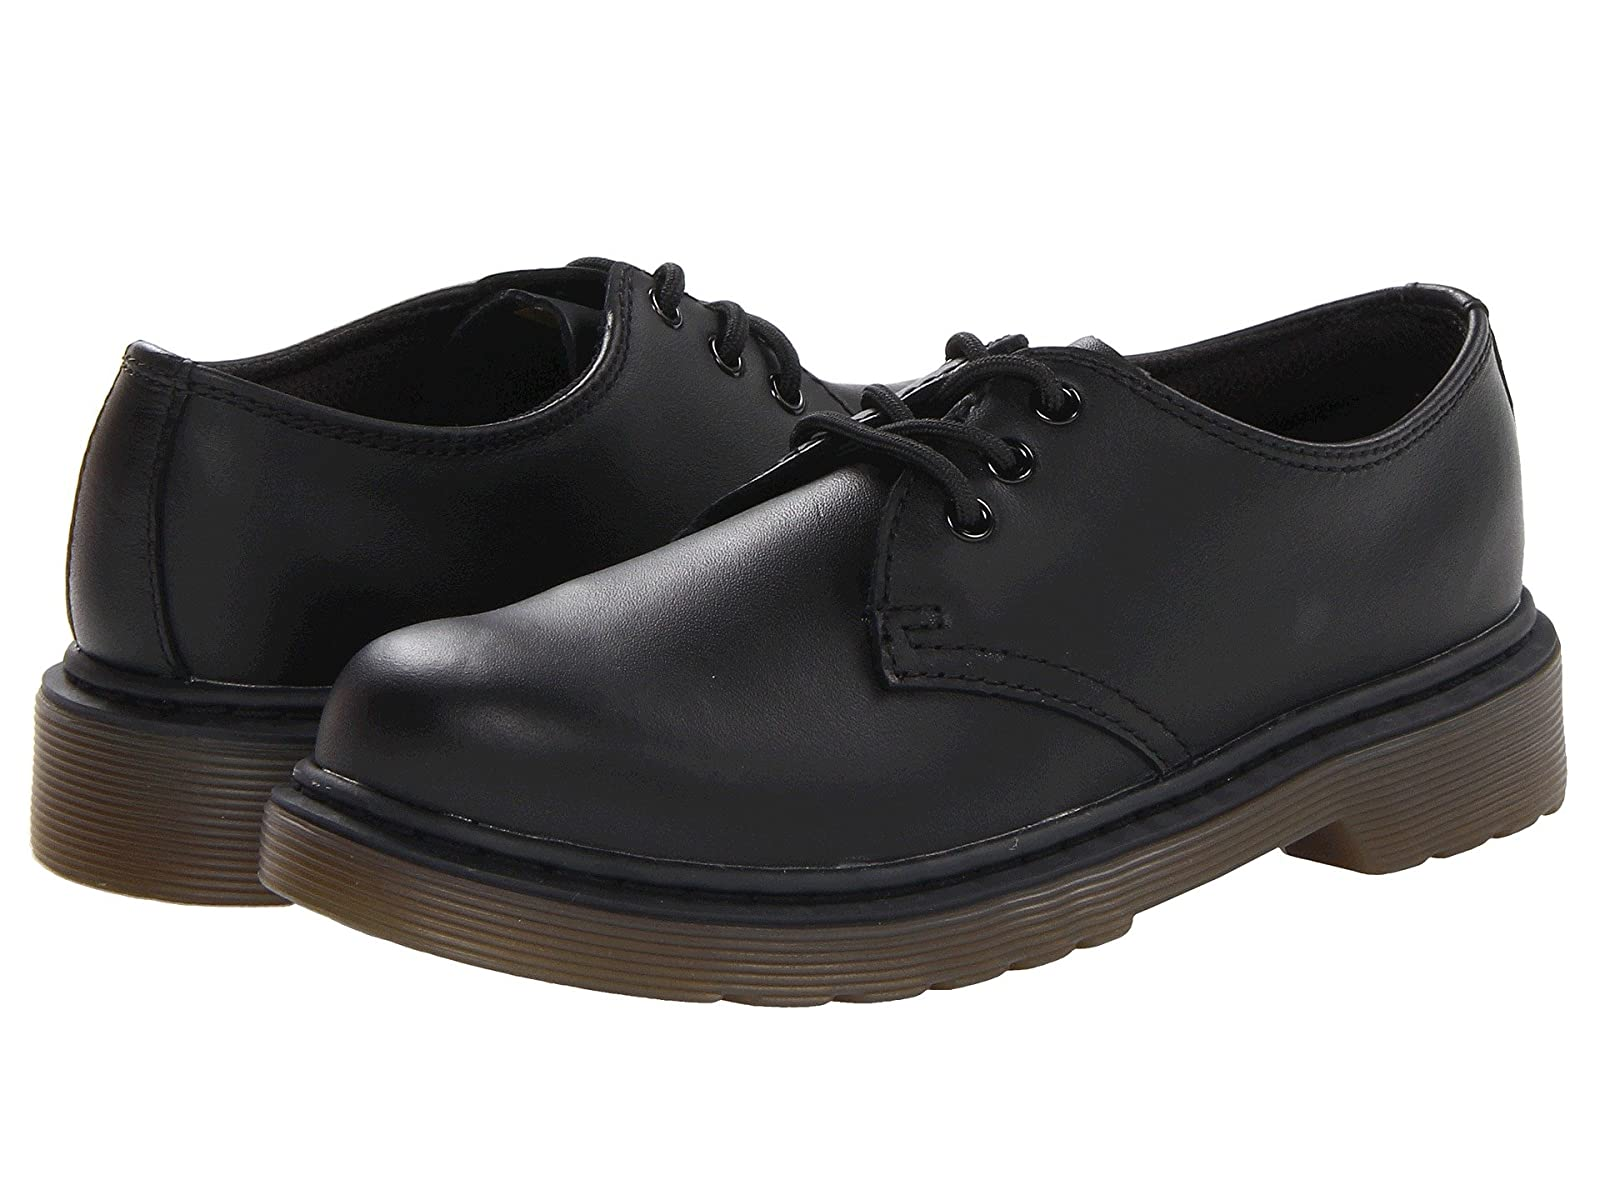 Dr. Martens Kid's Collection Everley Lace Shoe (Little Kid/Big Kid)Atmospheric grades have affordable shoes